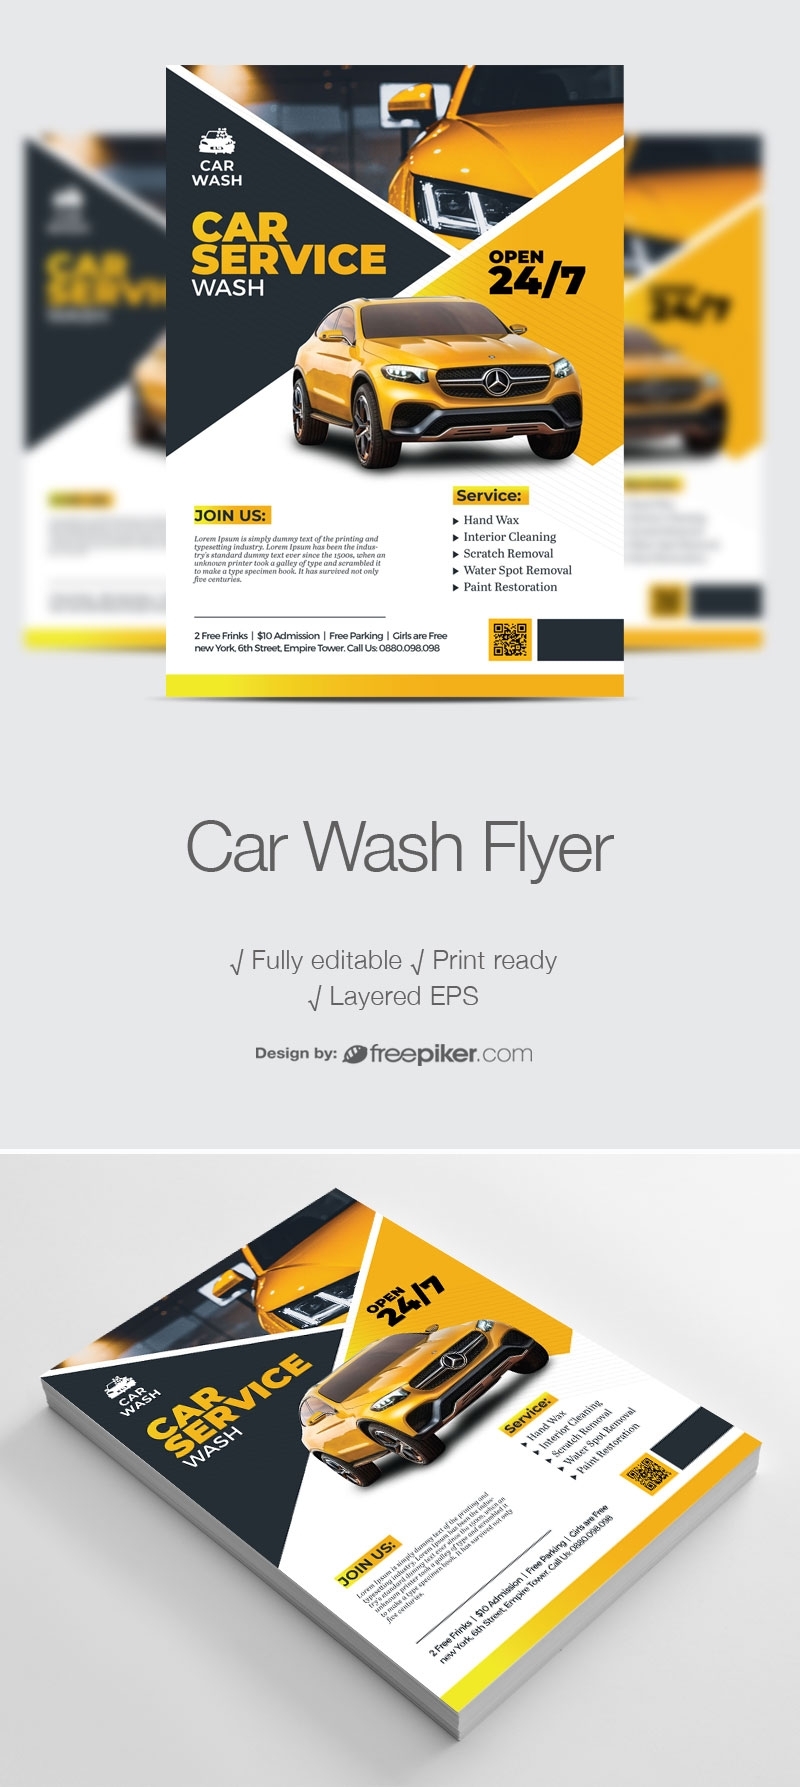 Car Wash Service Flyer With Yellow Accent